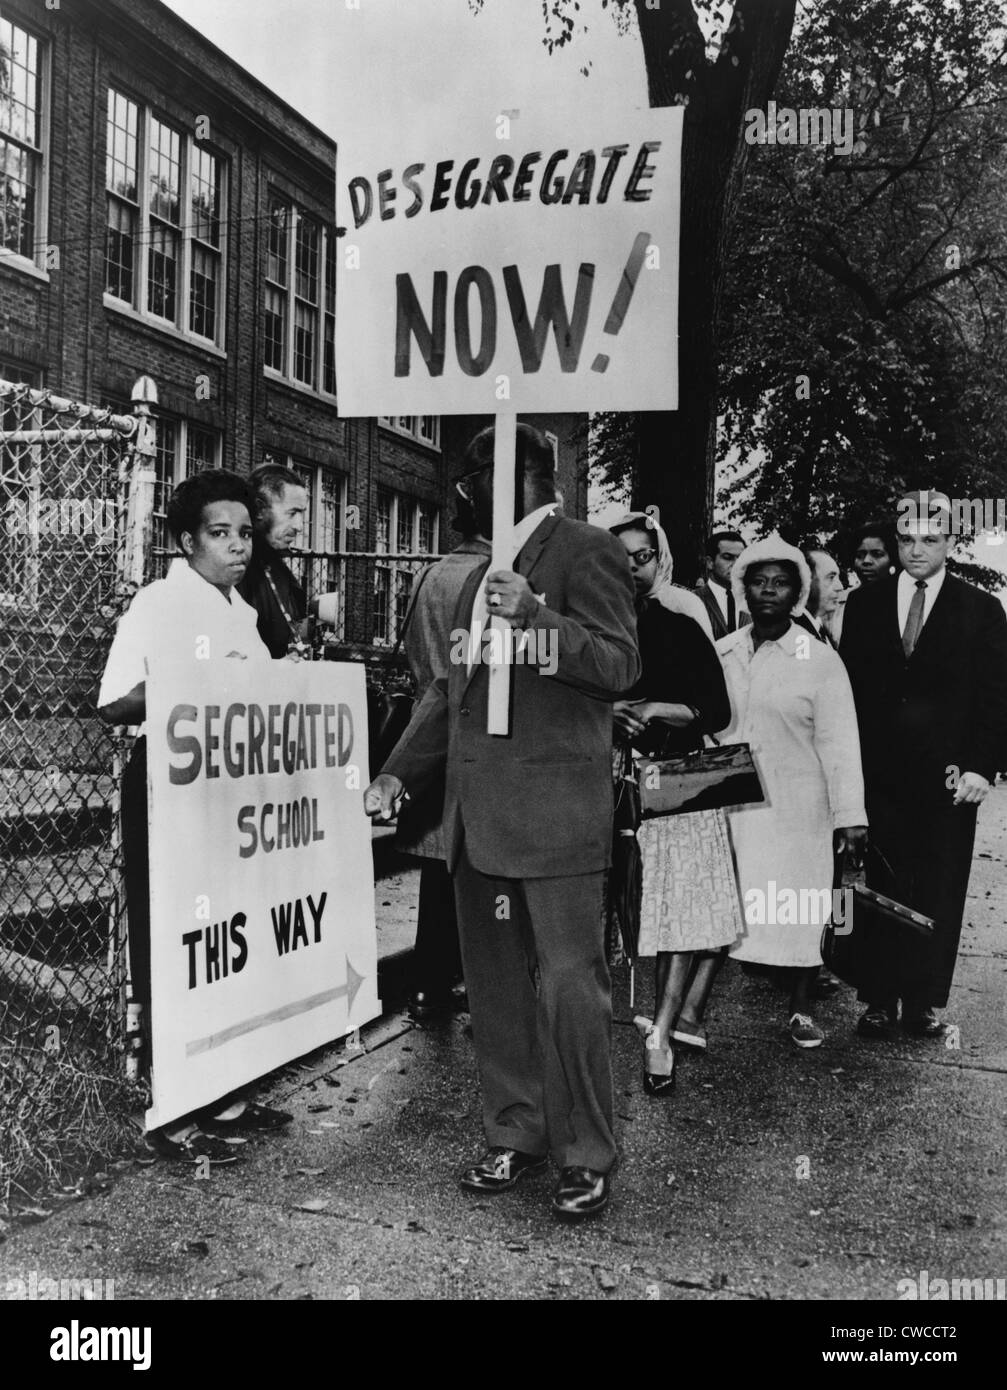 Africans American protest school segregation. Pickets outside Lincoln School in Englewood, N.J. were protesting - Stock Image